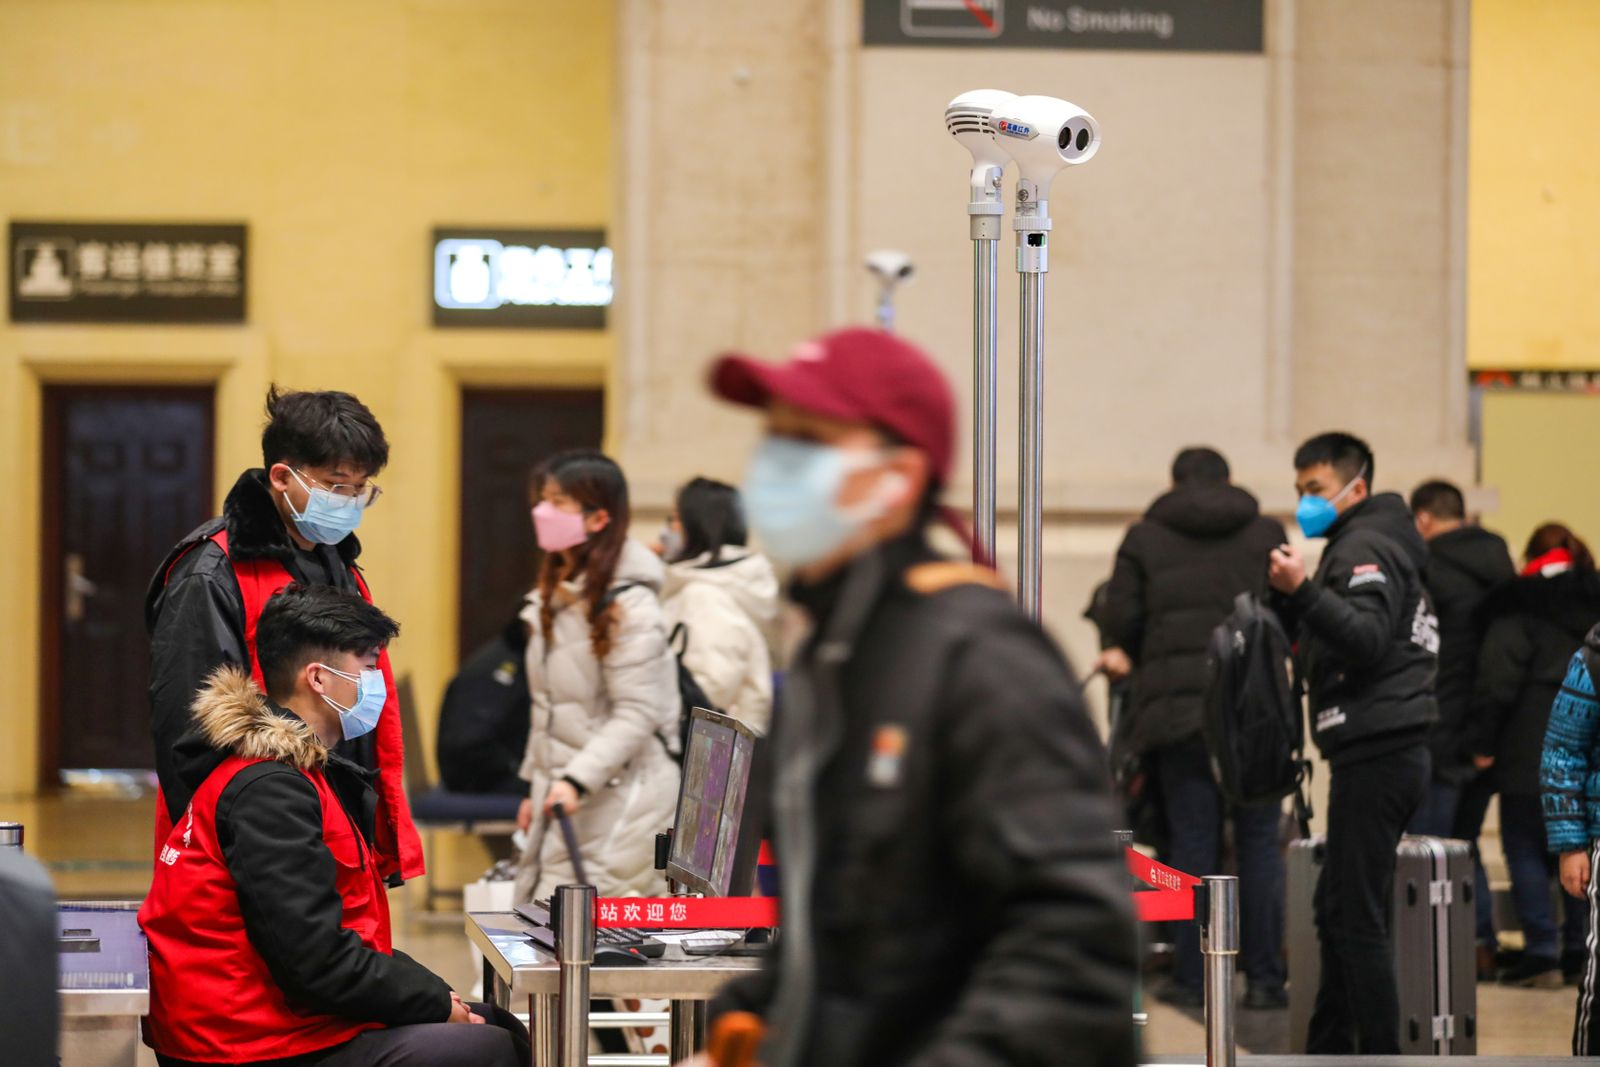 Staff members wearing masks monitor thermal scanners that detect temperatures of passengers at the security check inside the Hankou Railway Station in Wuhan